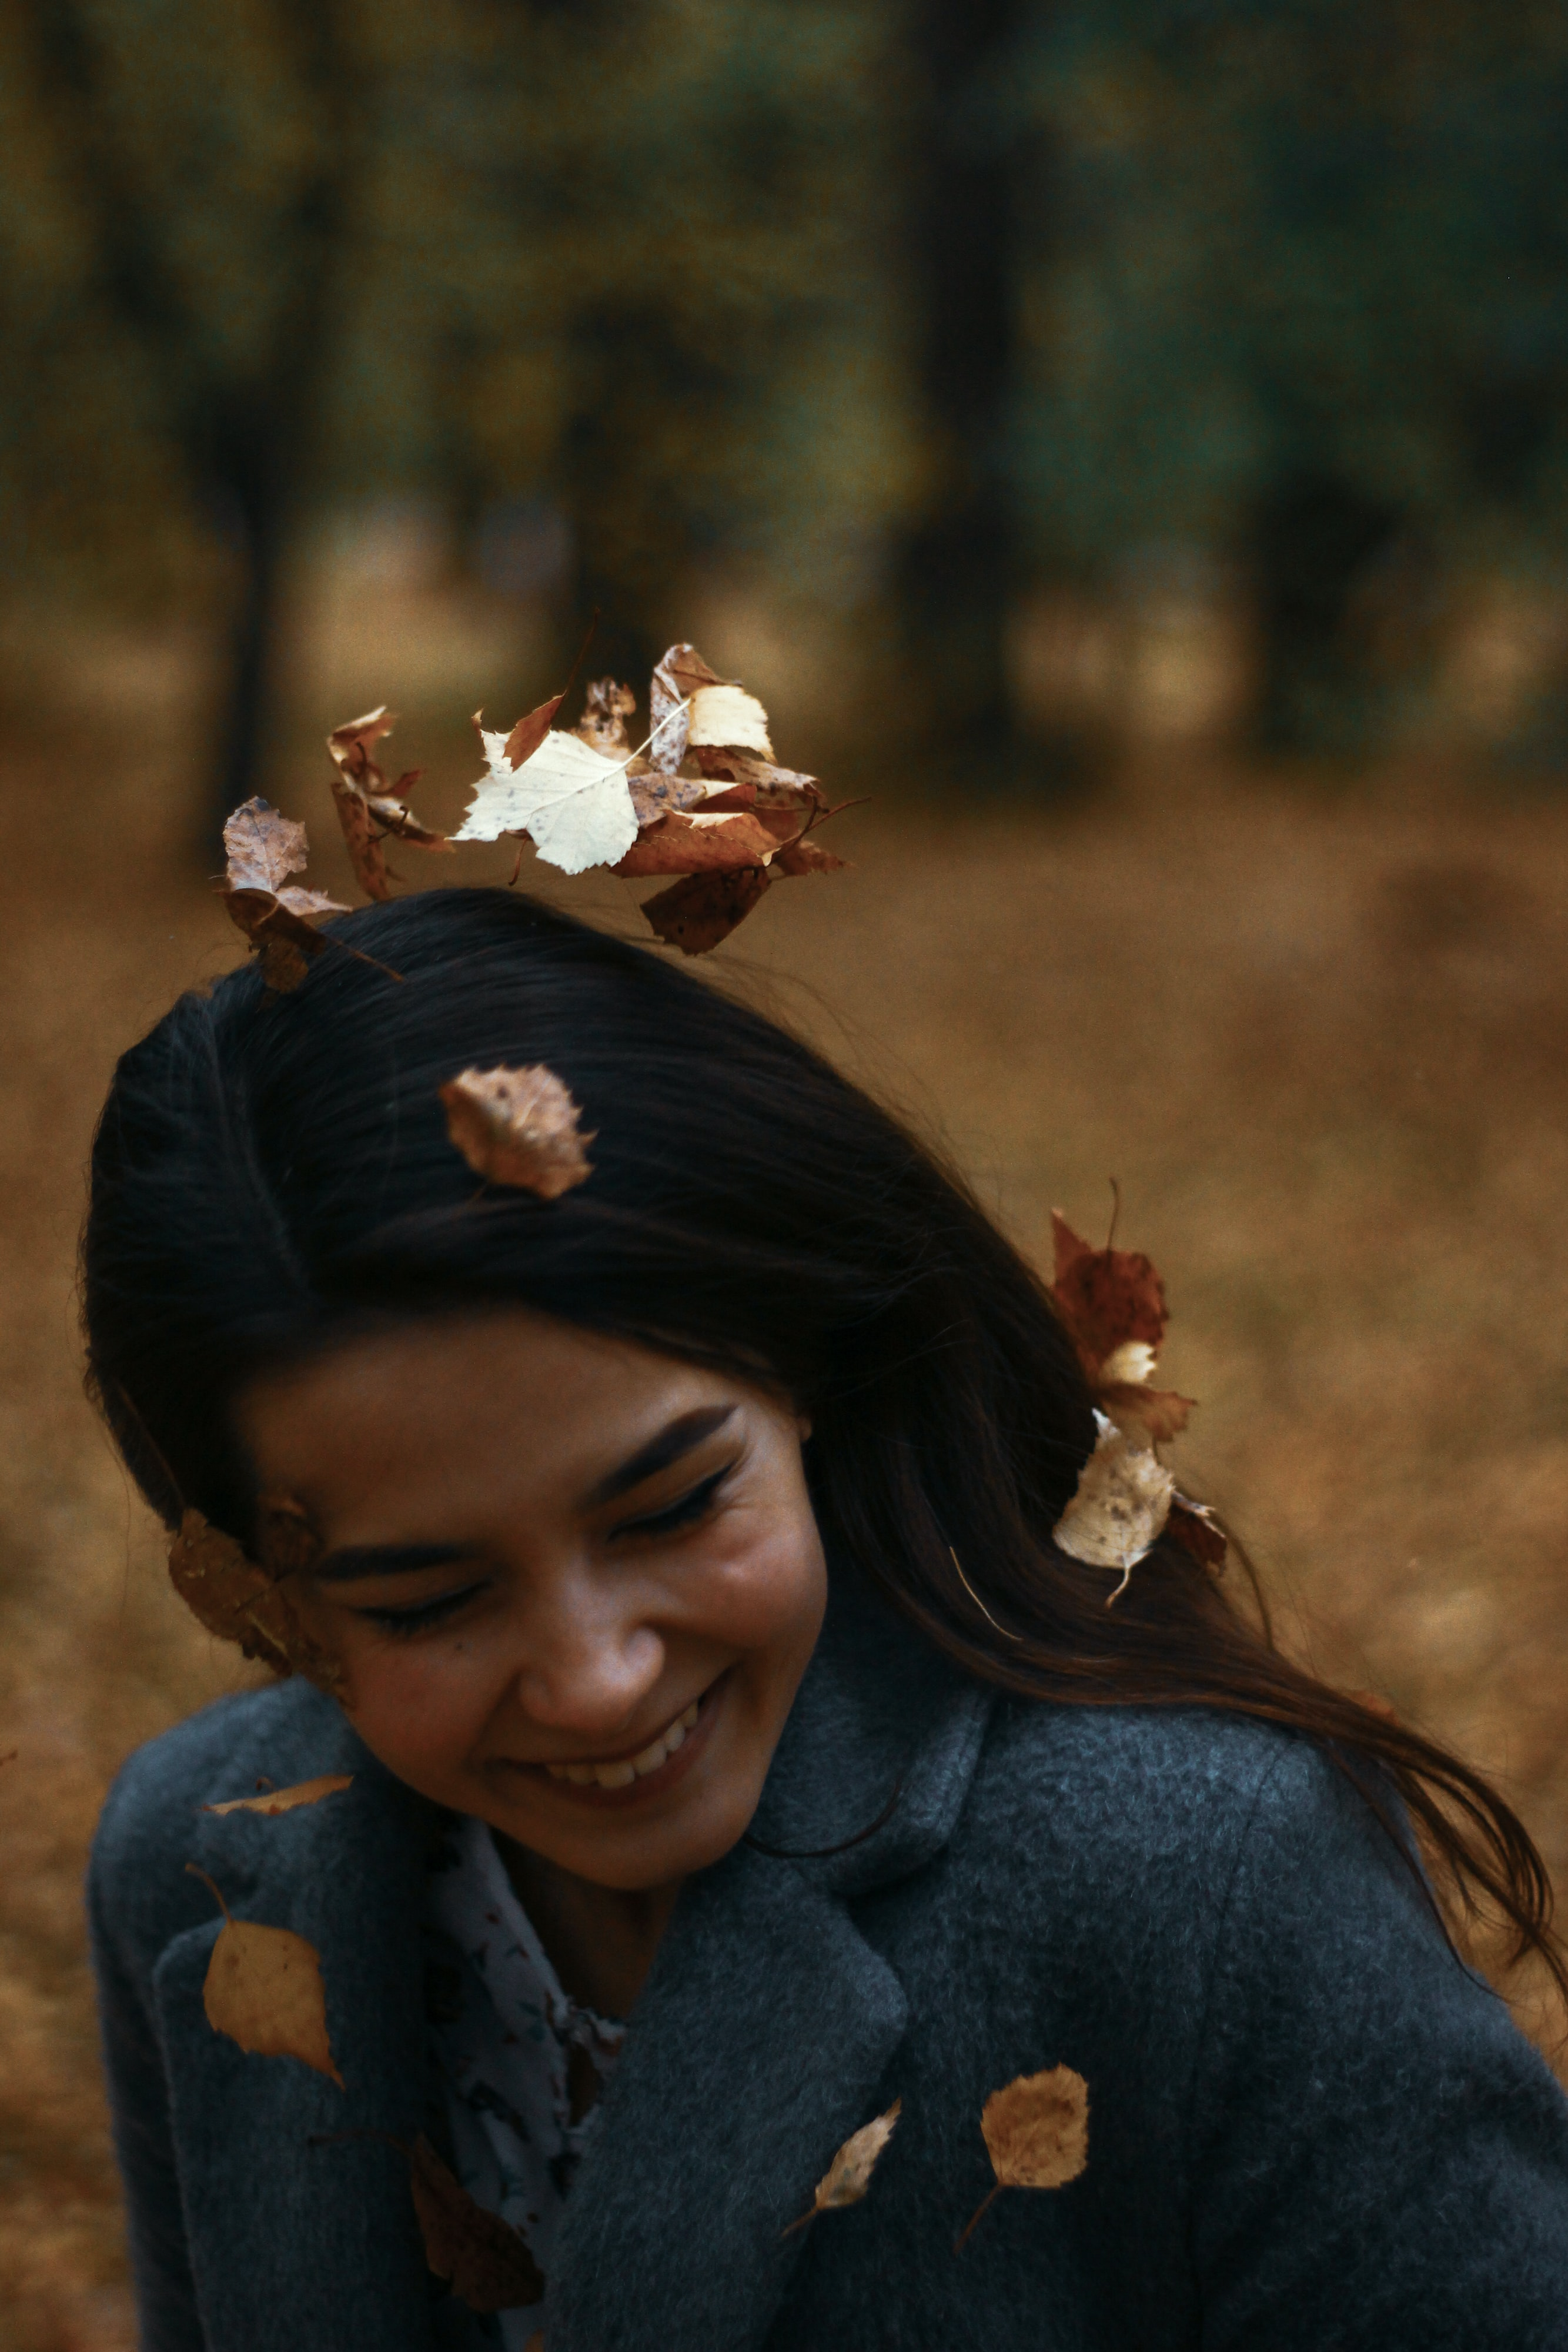 smiling woman in blue coat with leaves on her head